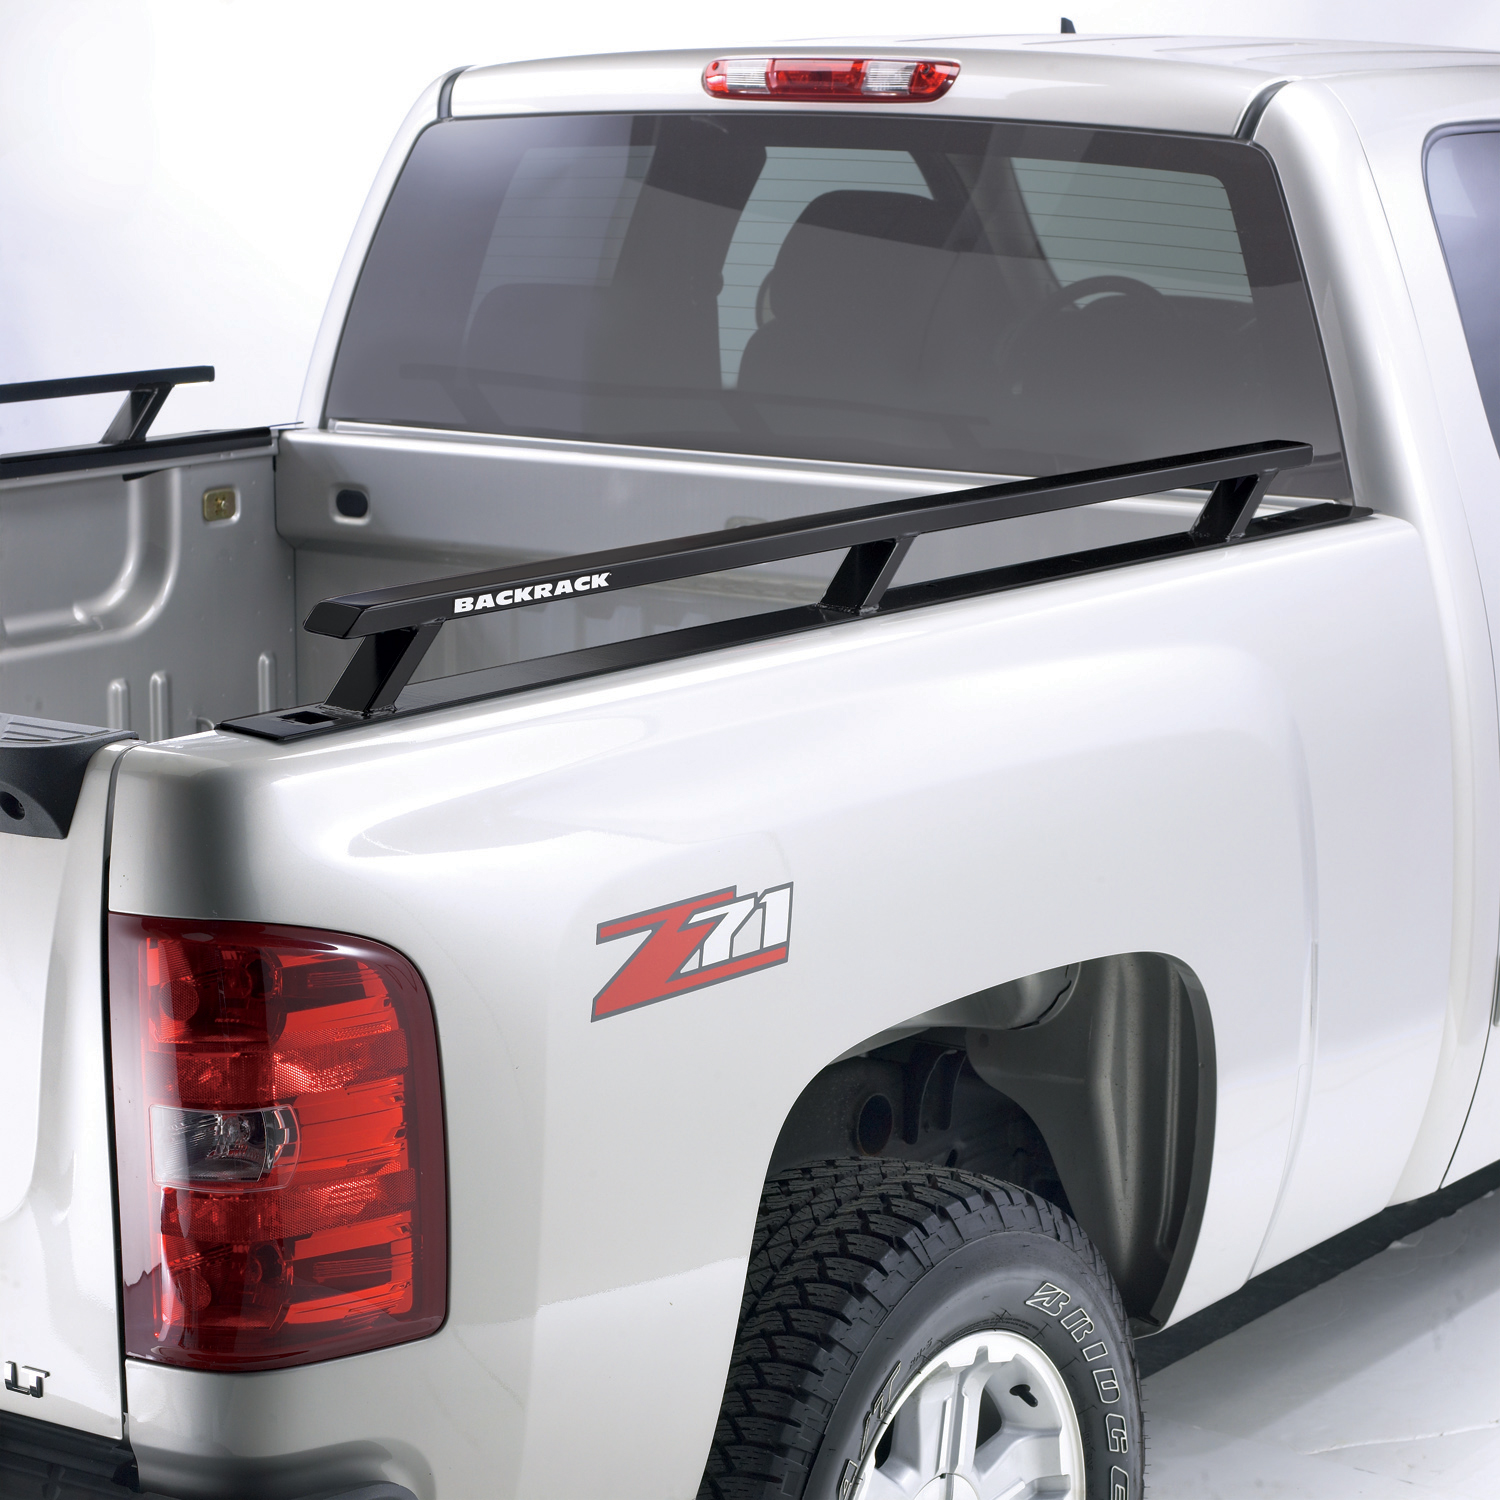 BackRack Truck Side Rails, Back Rack Truck Bed Rails